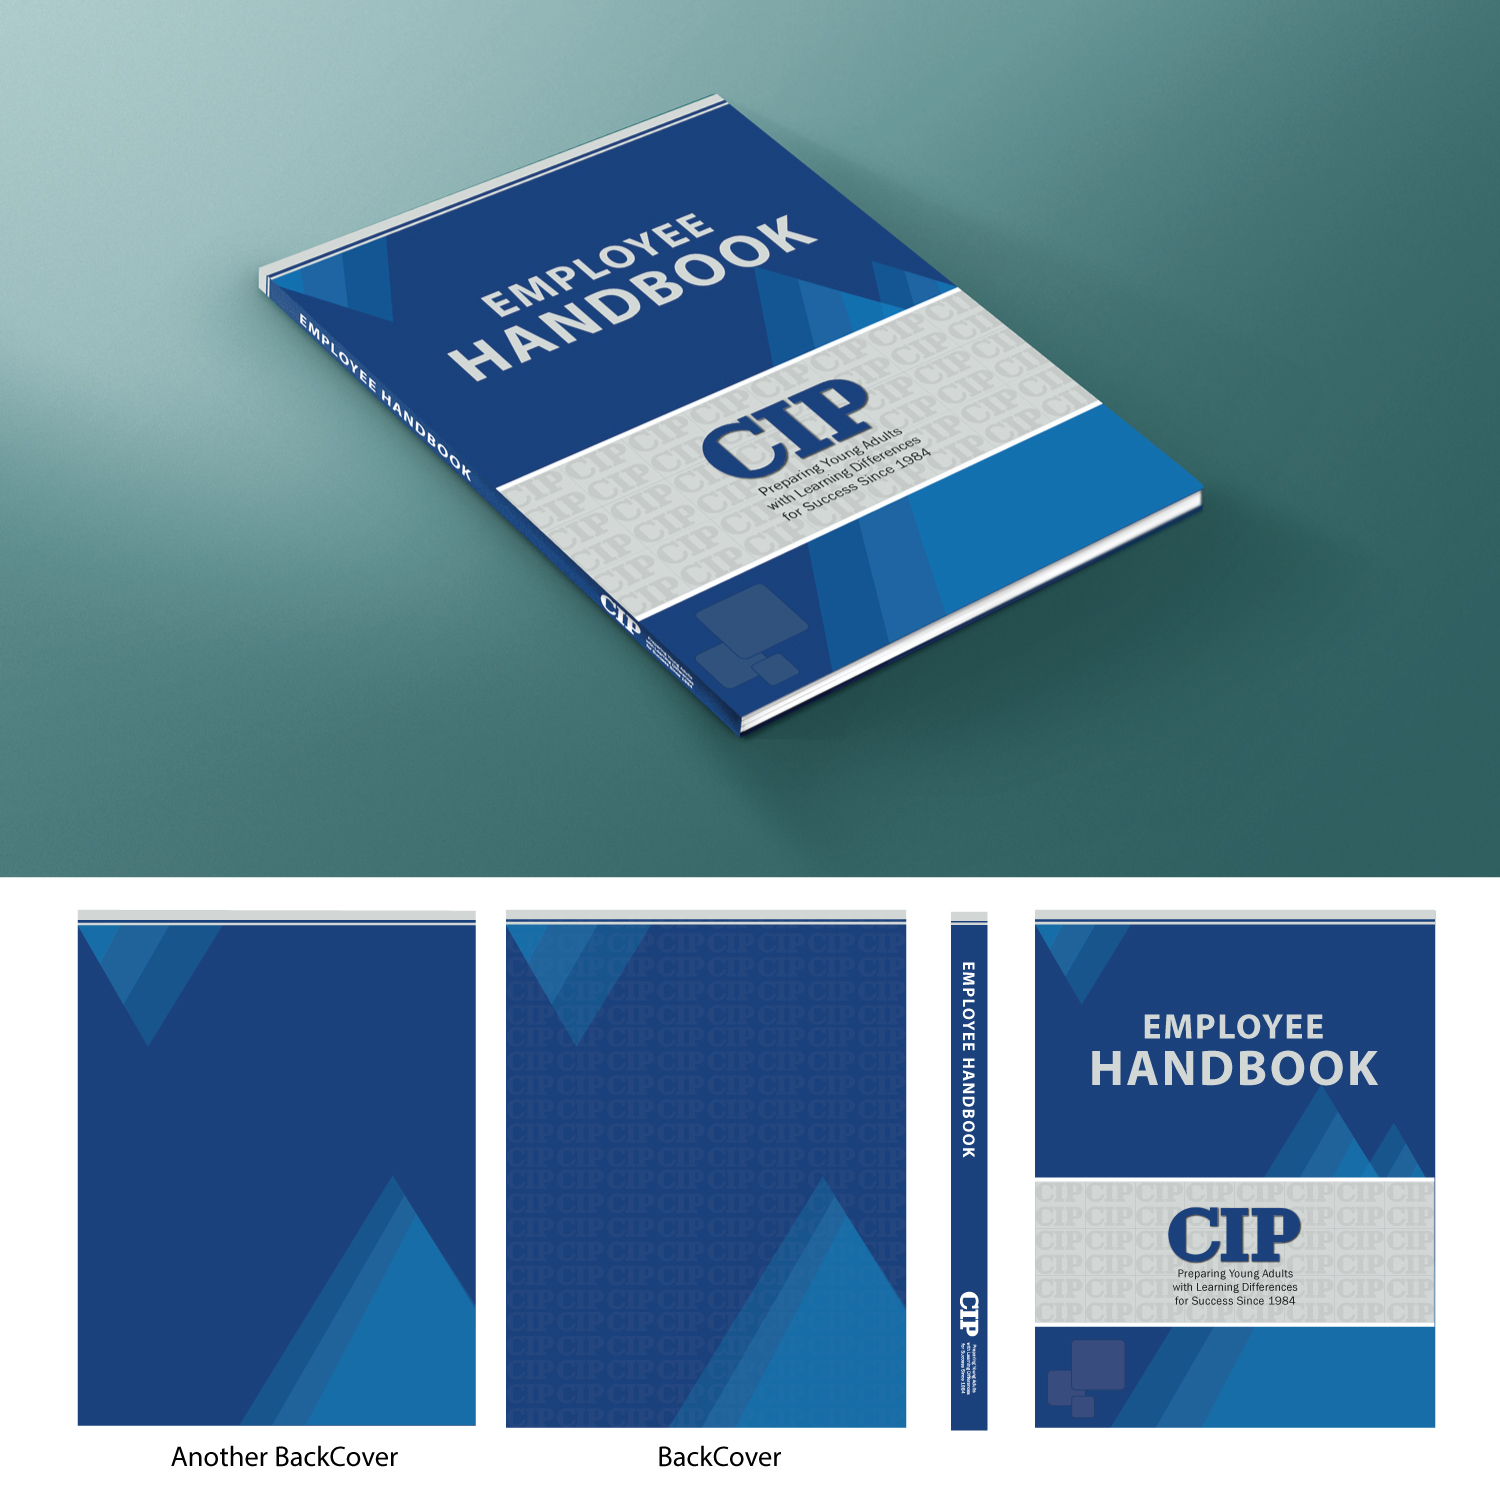 Modern bold education book cover design for college for Employee handbook cover design template